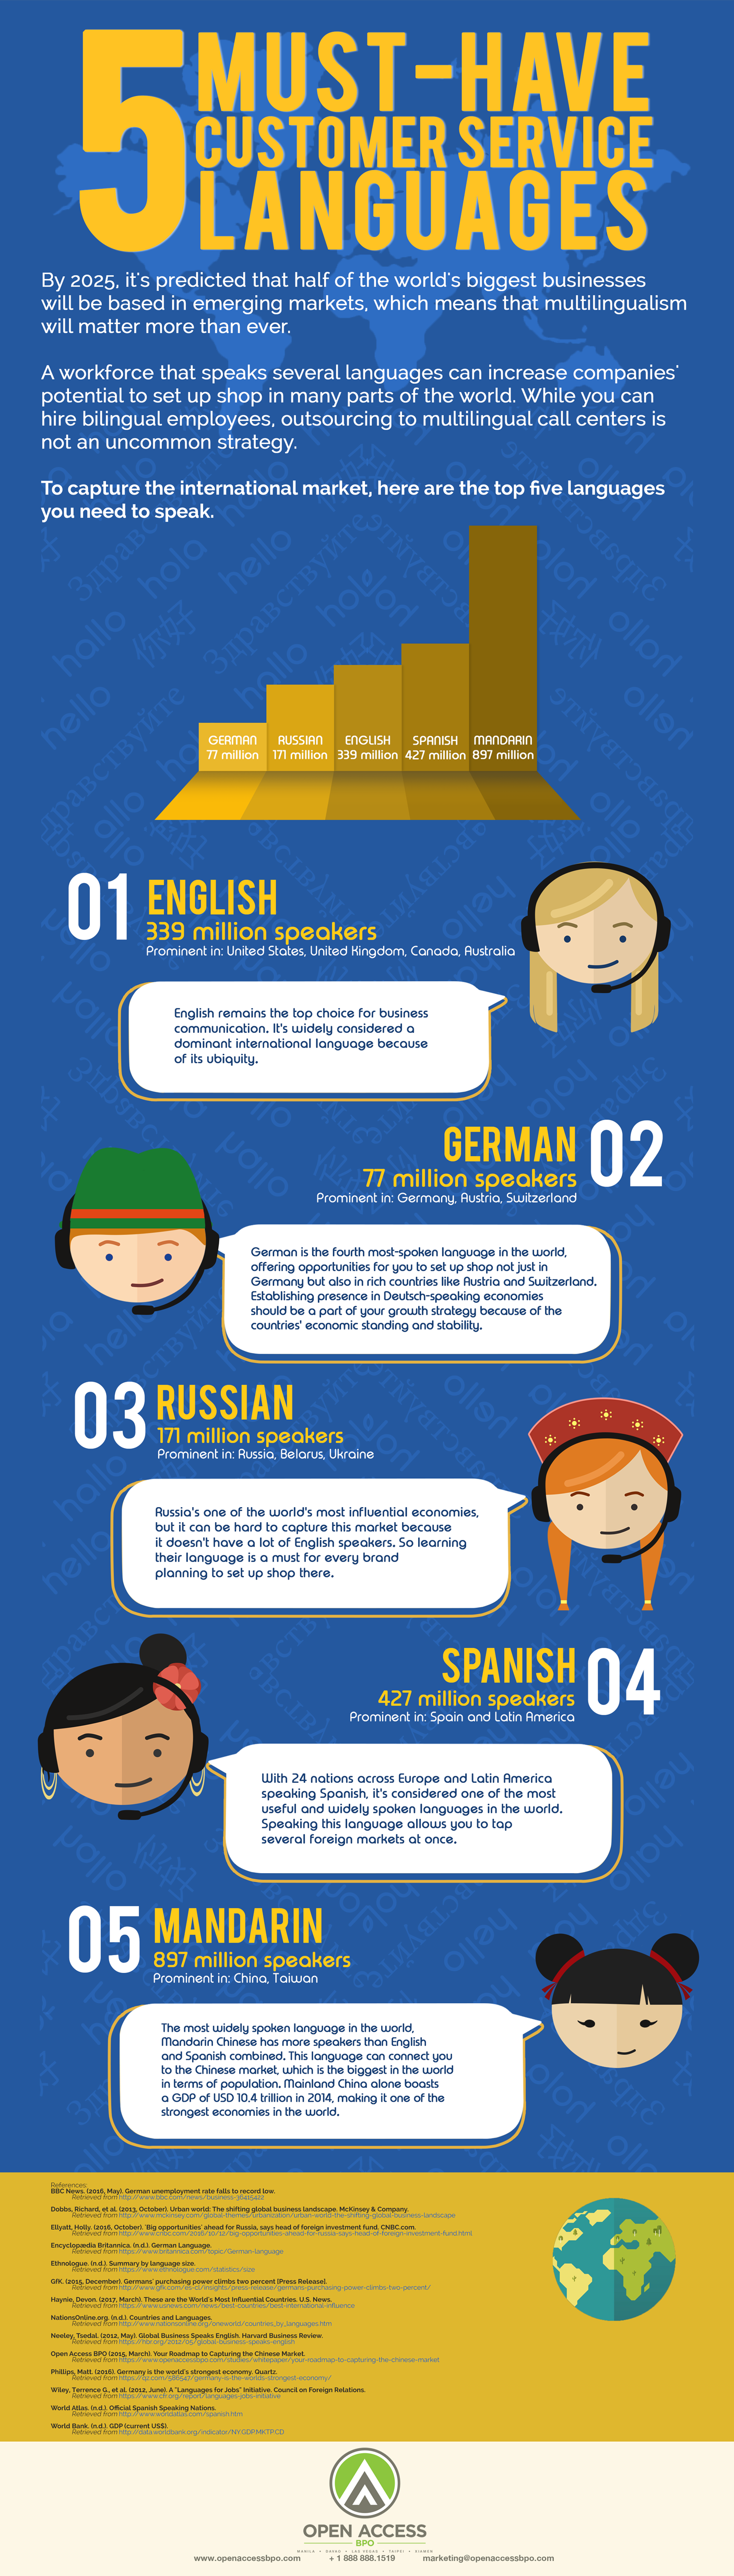 5 Must-have Customer Service Languages infographic